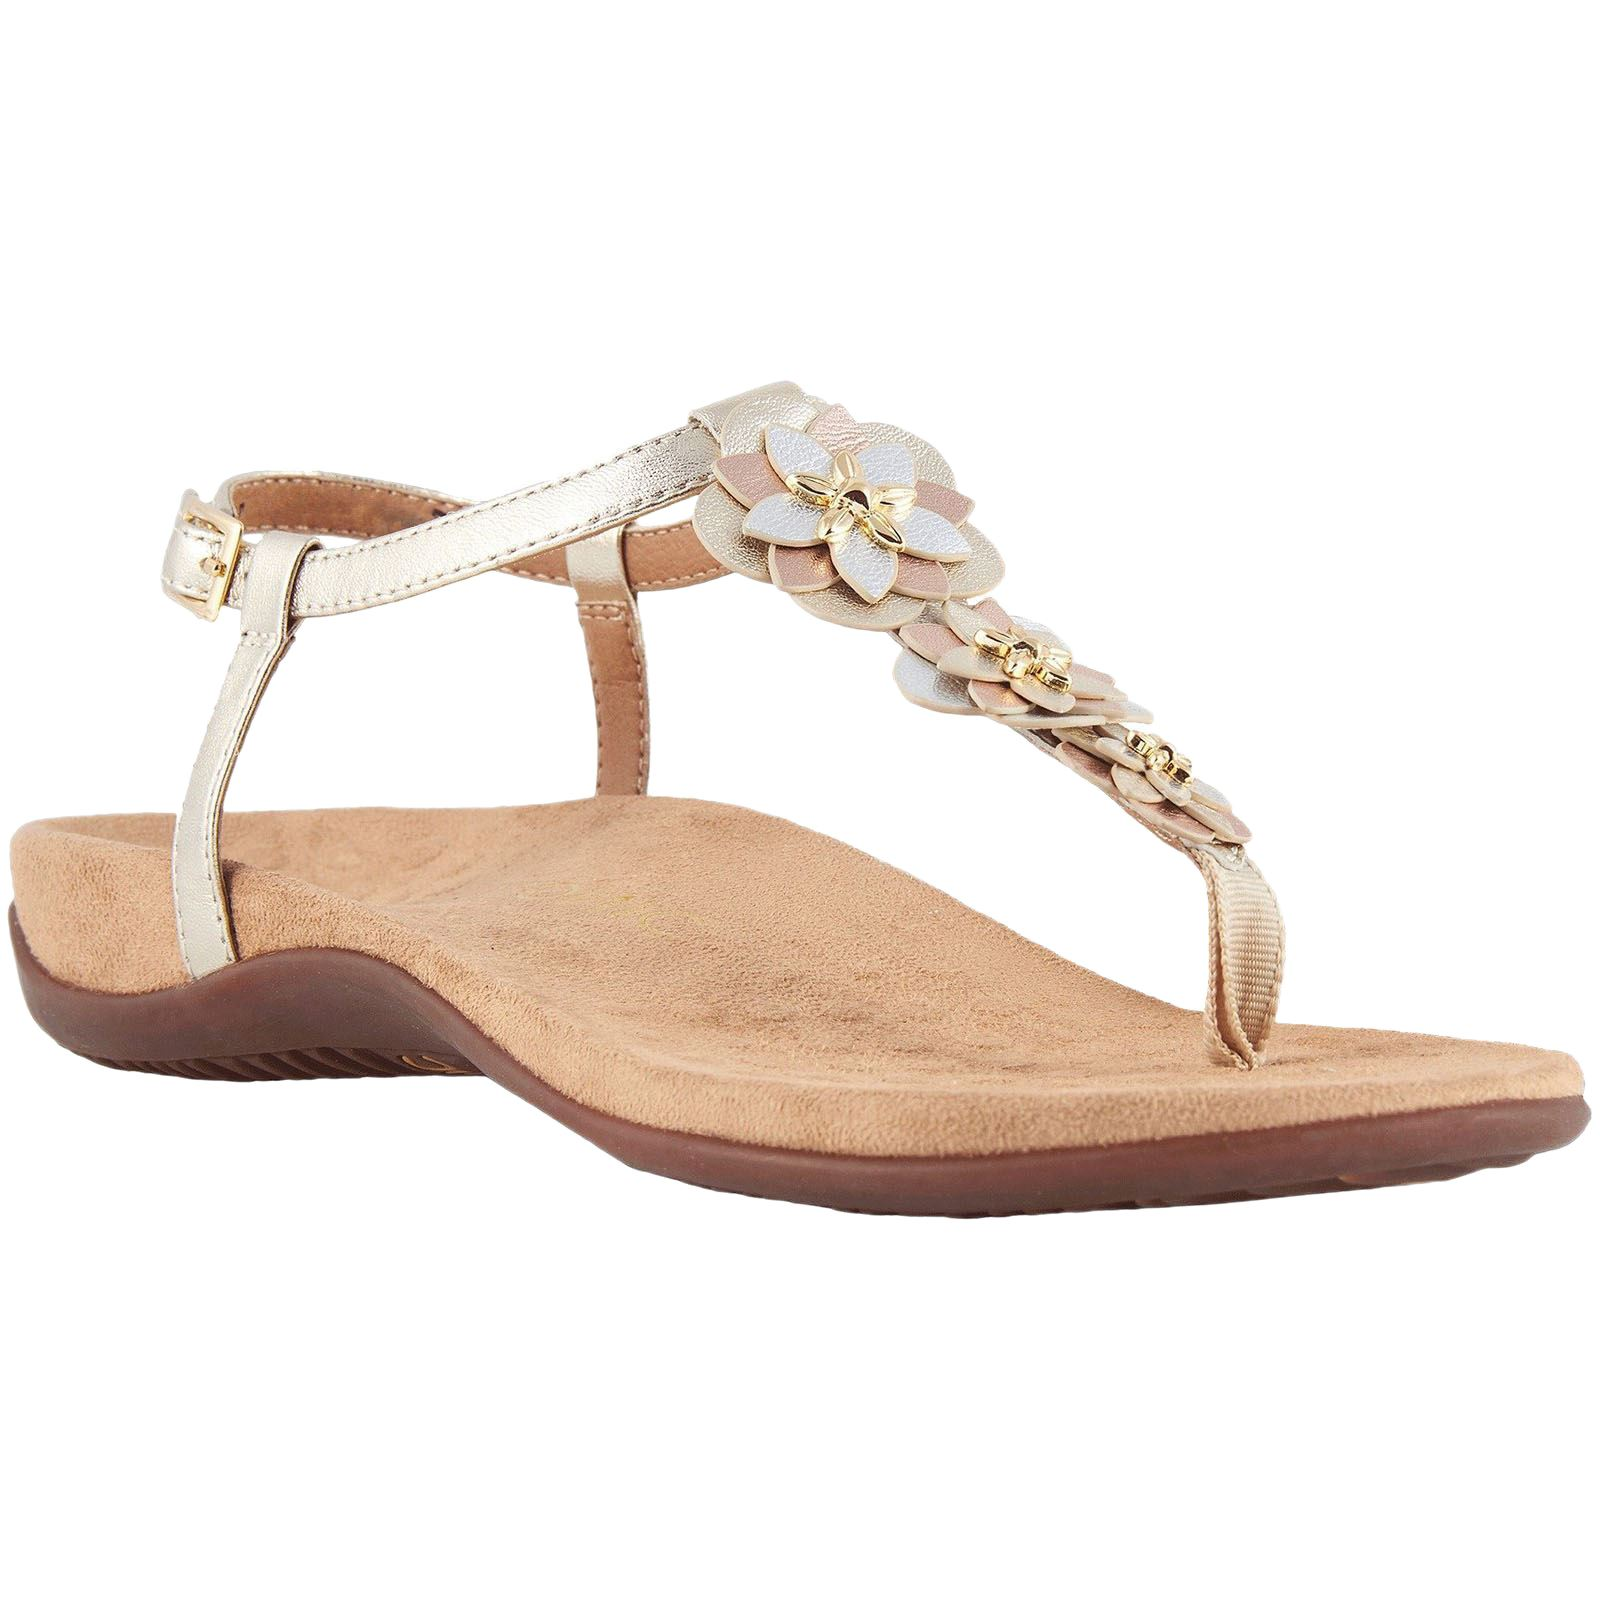 550b22b9a9d2 Details about Vionic Paulie Champagne Womens Leather Slingback Ankle Strap  Sandals